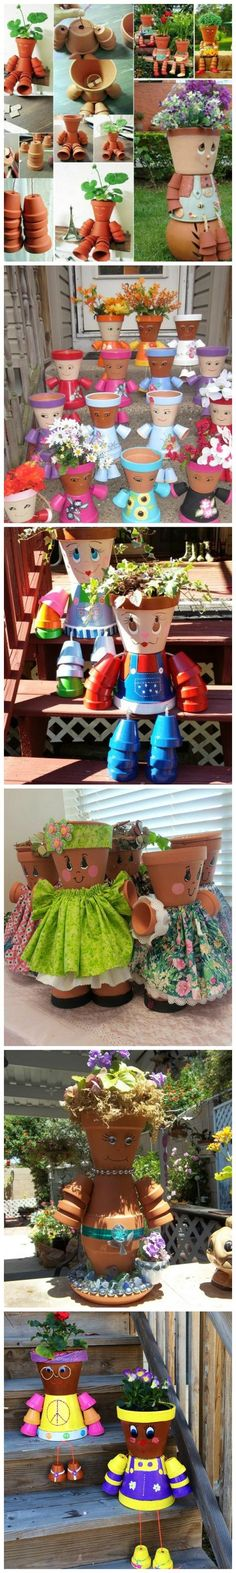 How to make Clay Pot Flower People . How to make Clay Pot Flower People Flower Pot Art, Clay Flower Pots, Flower Pot Crafts, Clay Pots, Clay Pot Projects, Clay Pot Crafts, Diy Clay, Shell Crafts, Craft Projects